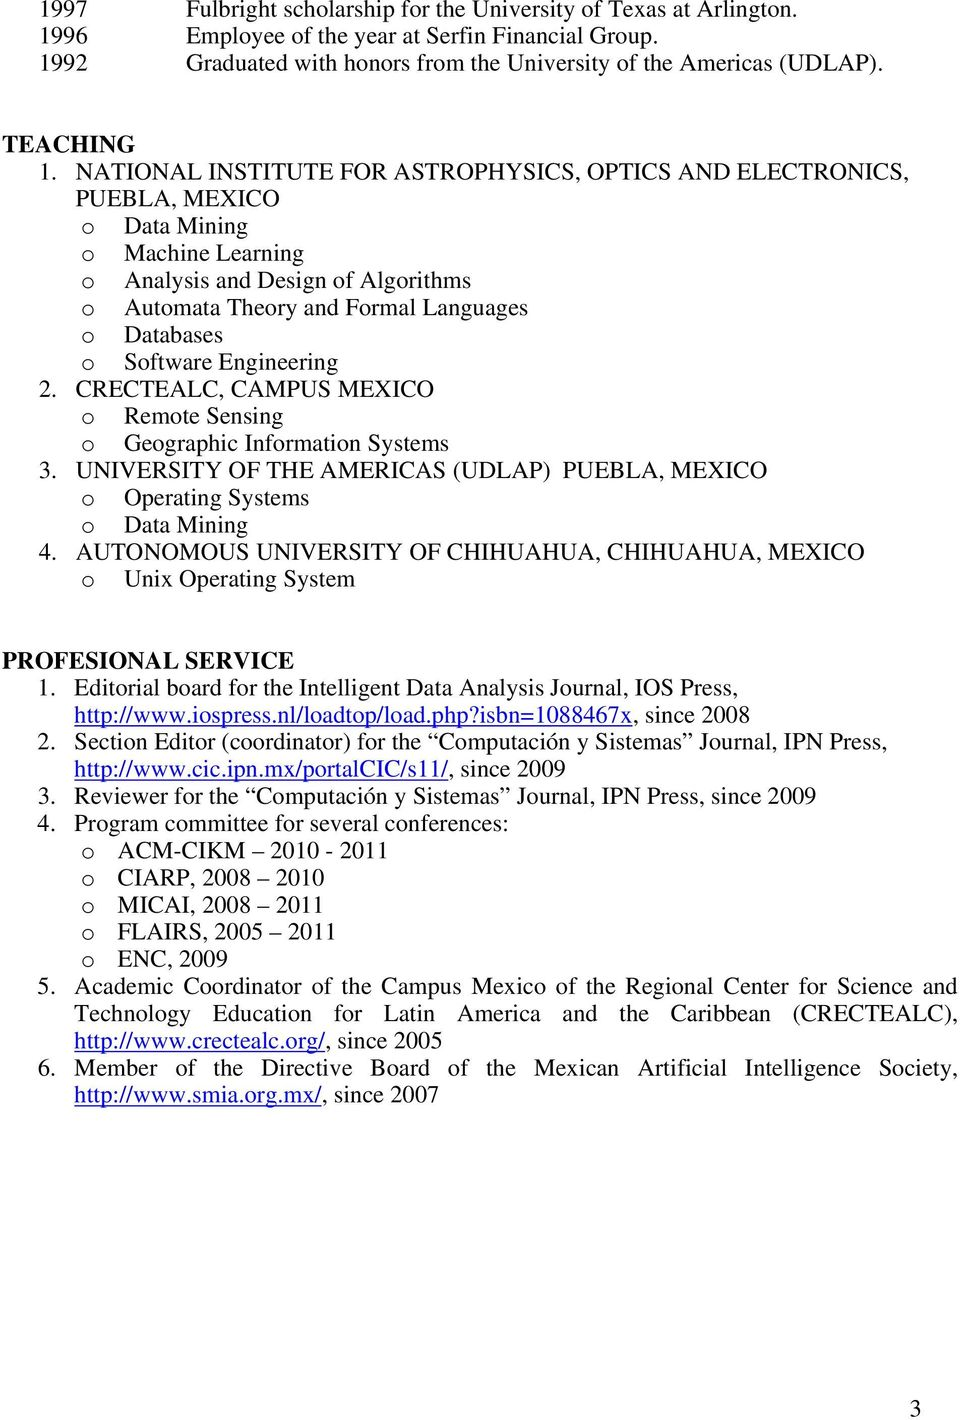 NATIONAL INSTITUTE FOR ASTROPHYSICS, OPTICS AND ELECTRONICS, PUEBLA, MEXICO o Data Mining o Machine Learning o Analysis and Design of Algorithms o Automata Theory and Formal Languages o Databases o